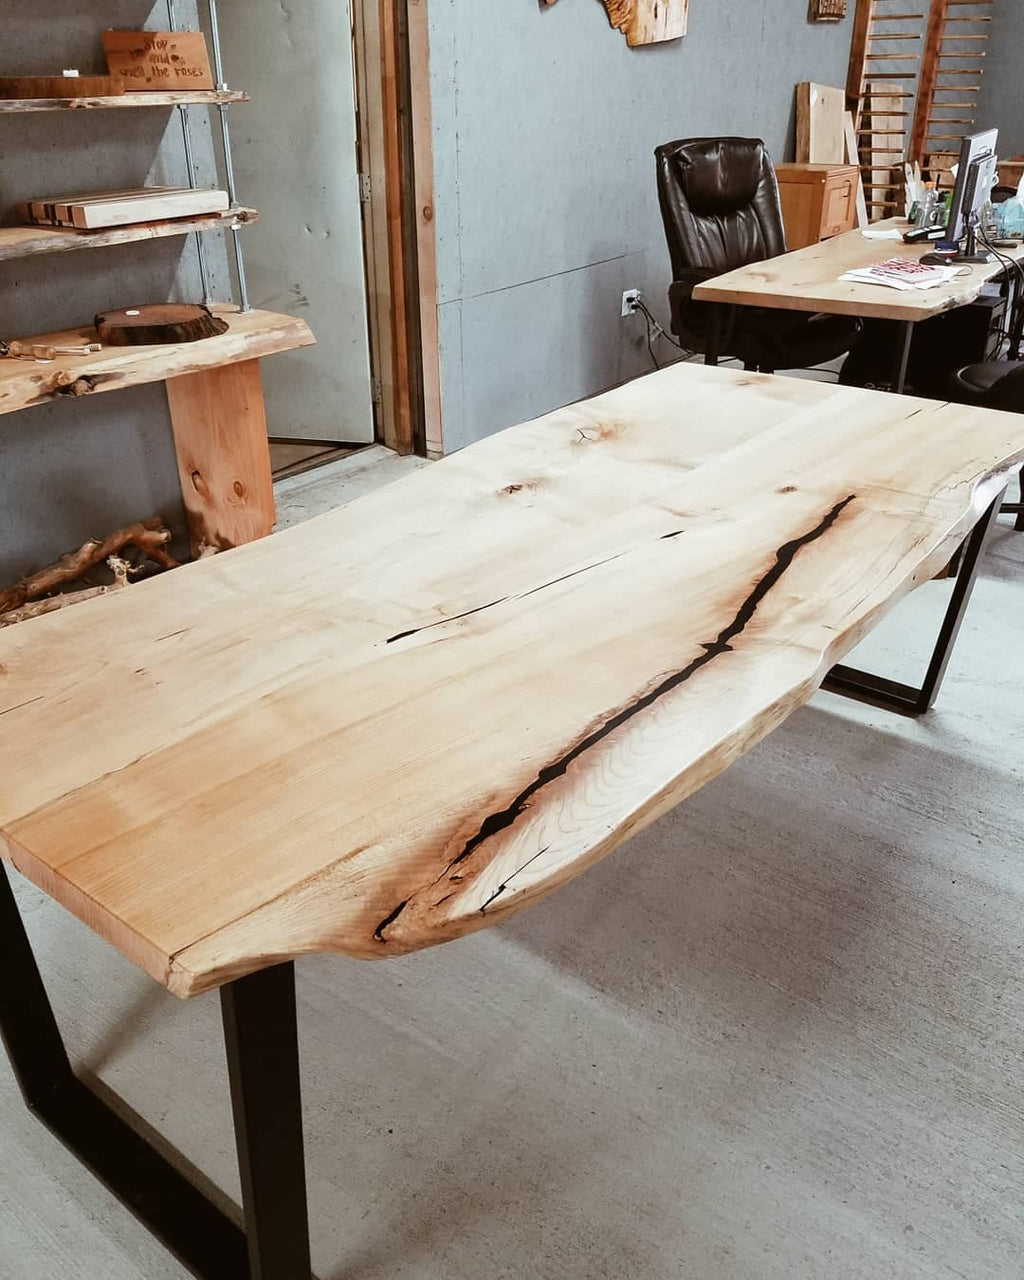 Live Edge Maple Dining Room Table w/ Steel Tube Legs - Shipping Not Included